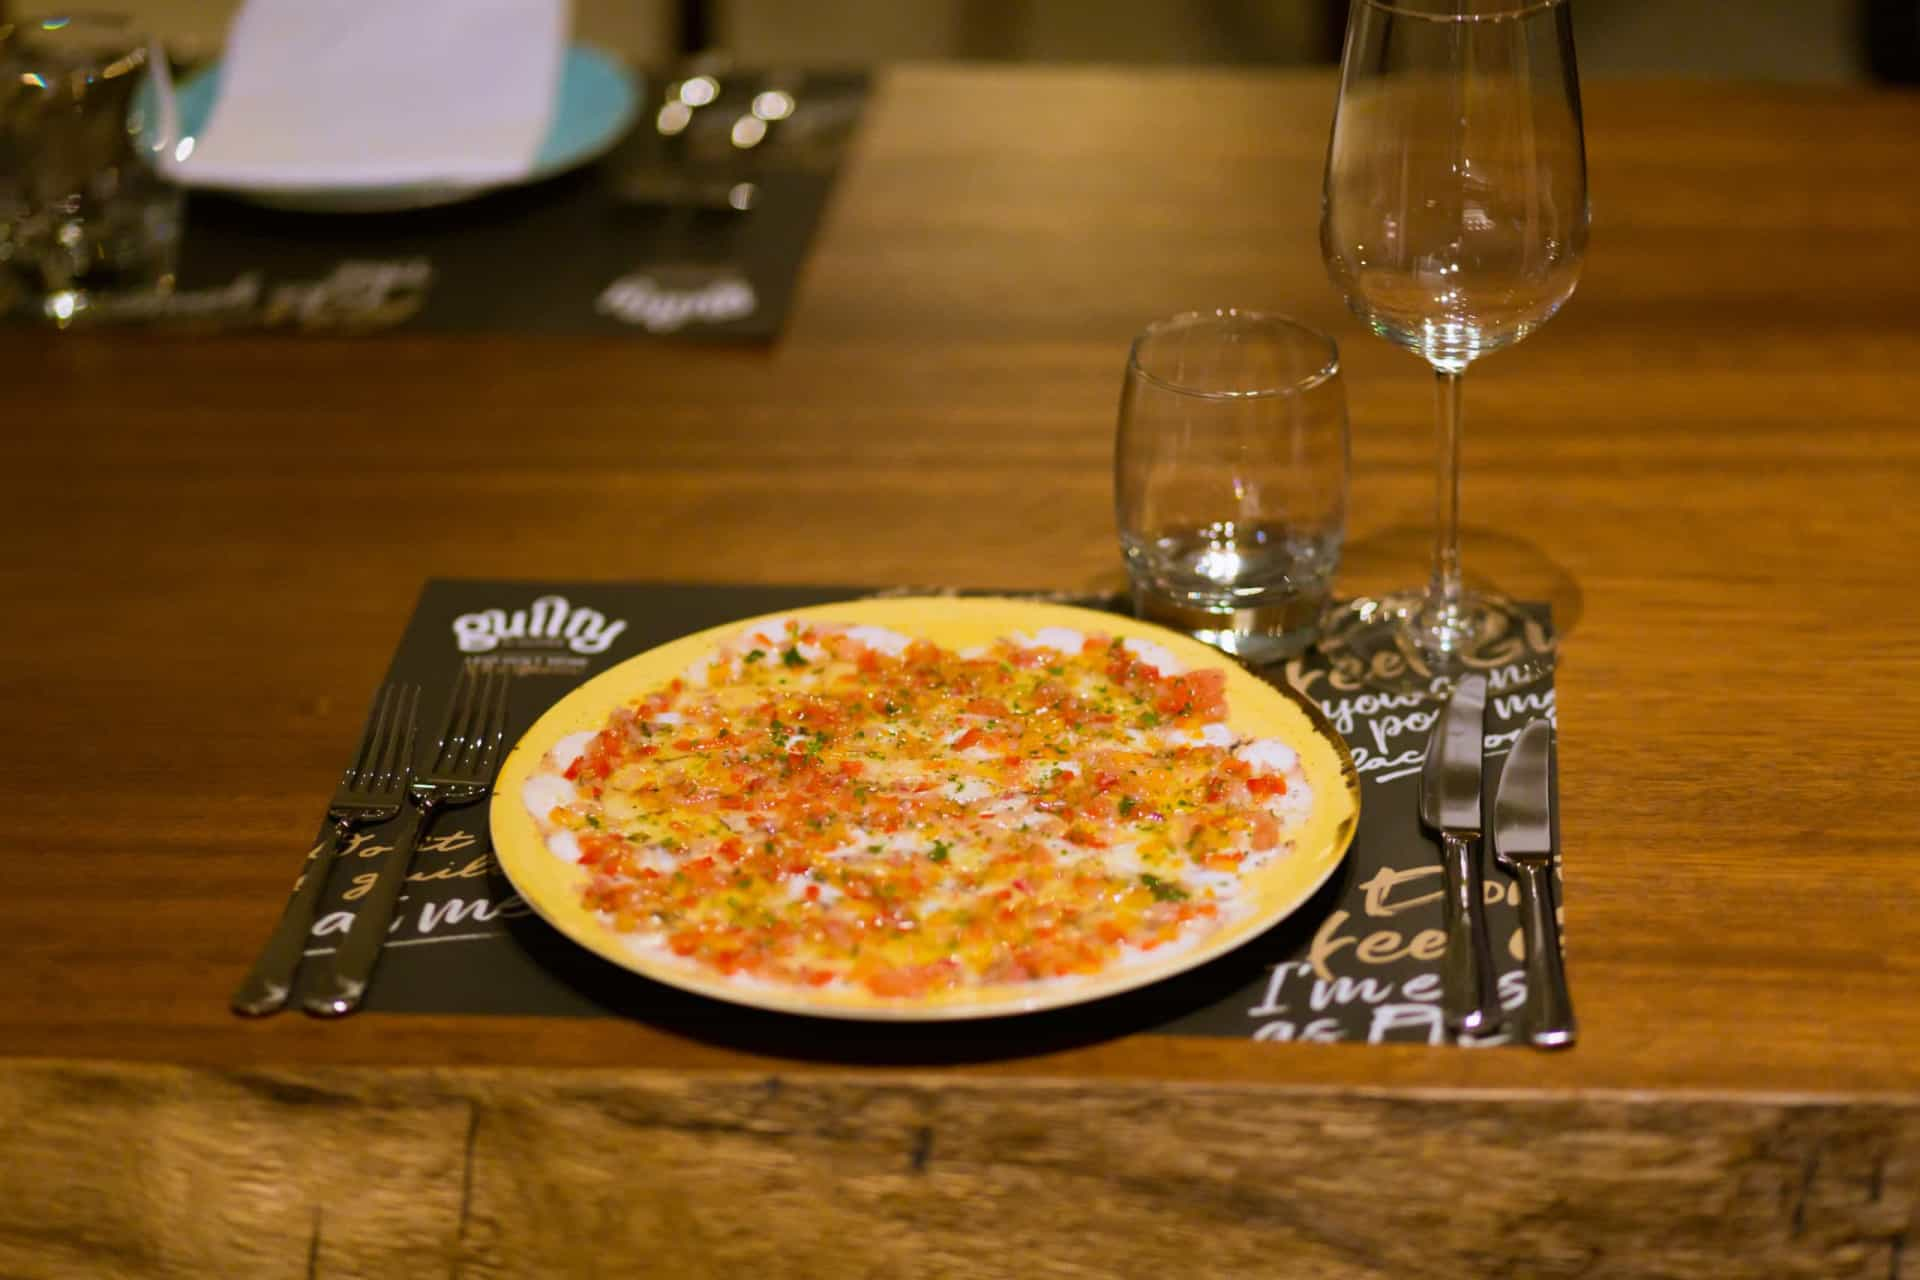 Irreverent Food Concept Lands In Porto: Meet The New Guilty By Oliver  guilty by olivier Irreverent Food Concept Lands In Porto: Meet The New Guilty By Olivier naom 5ce52b8ca458e